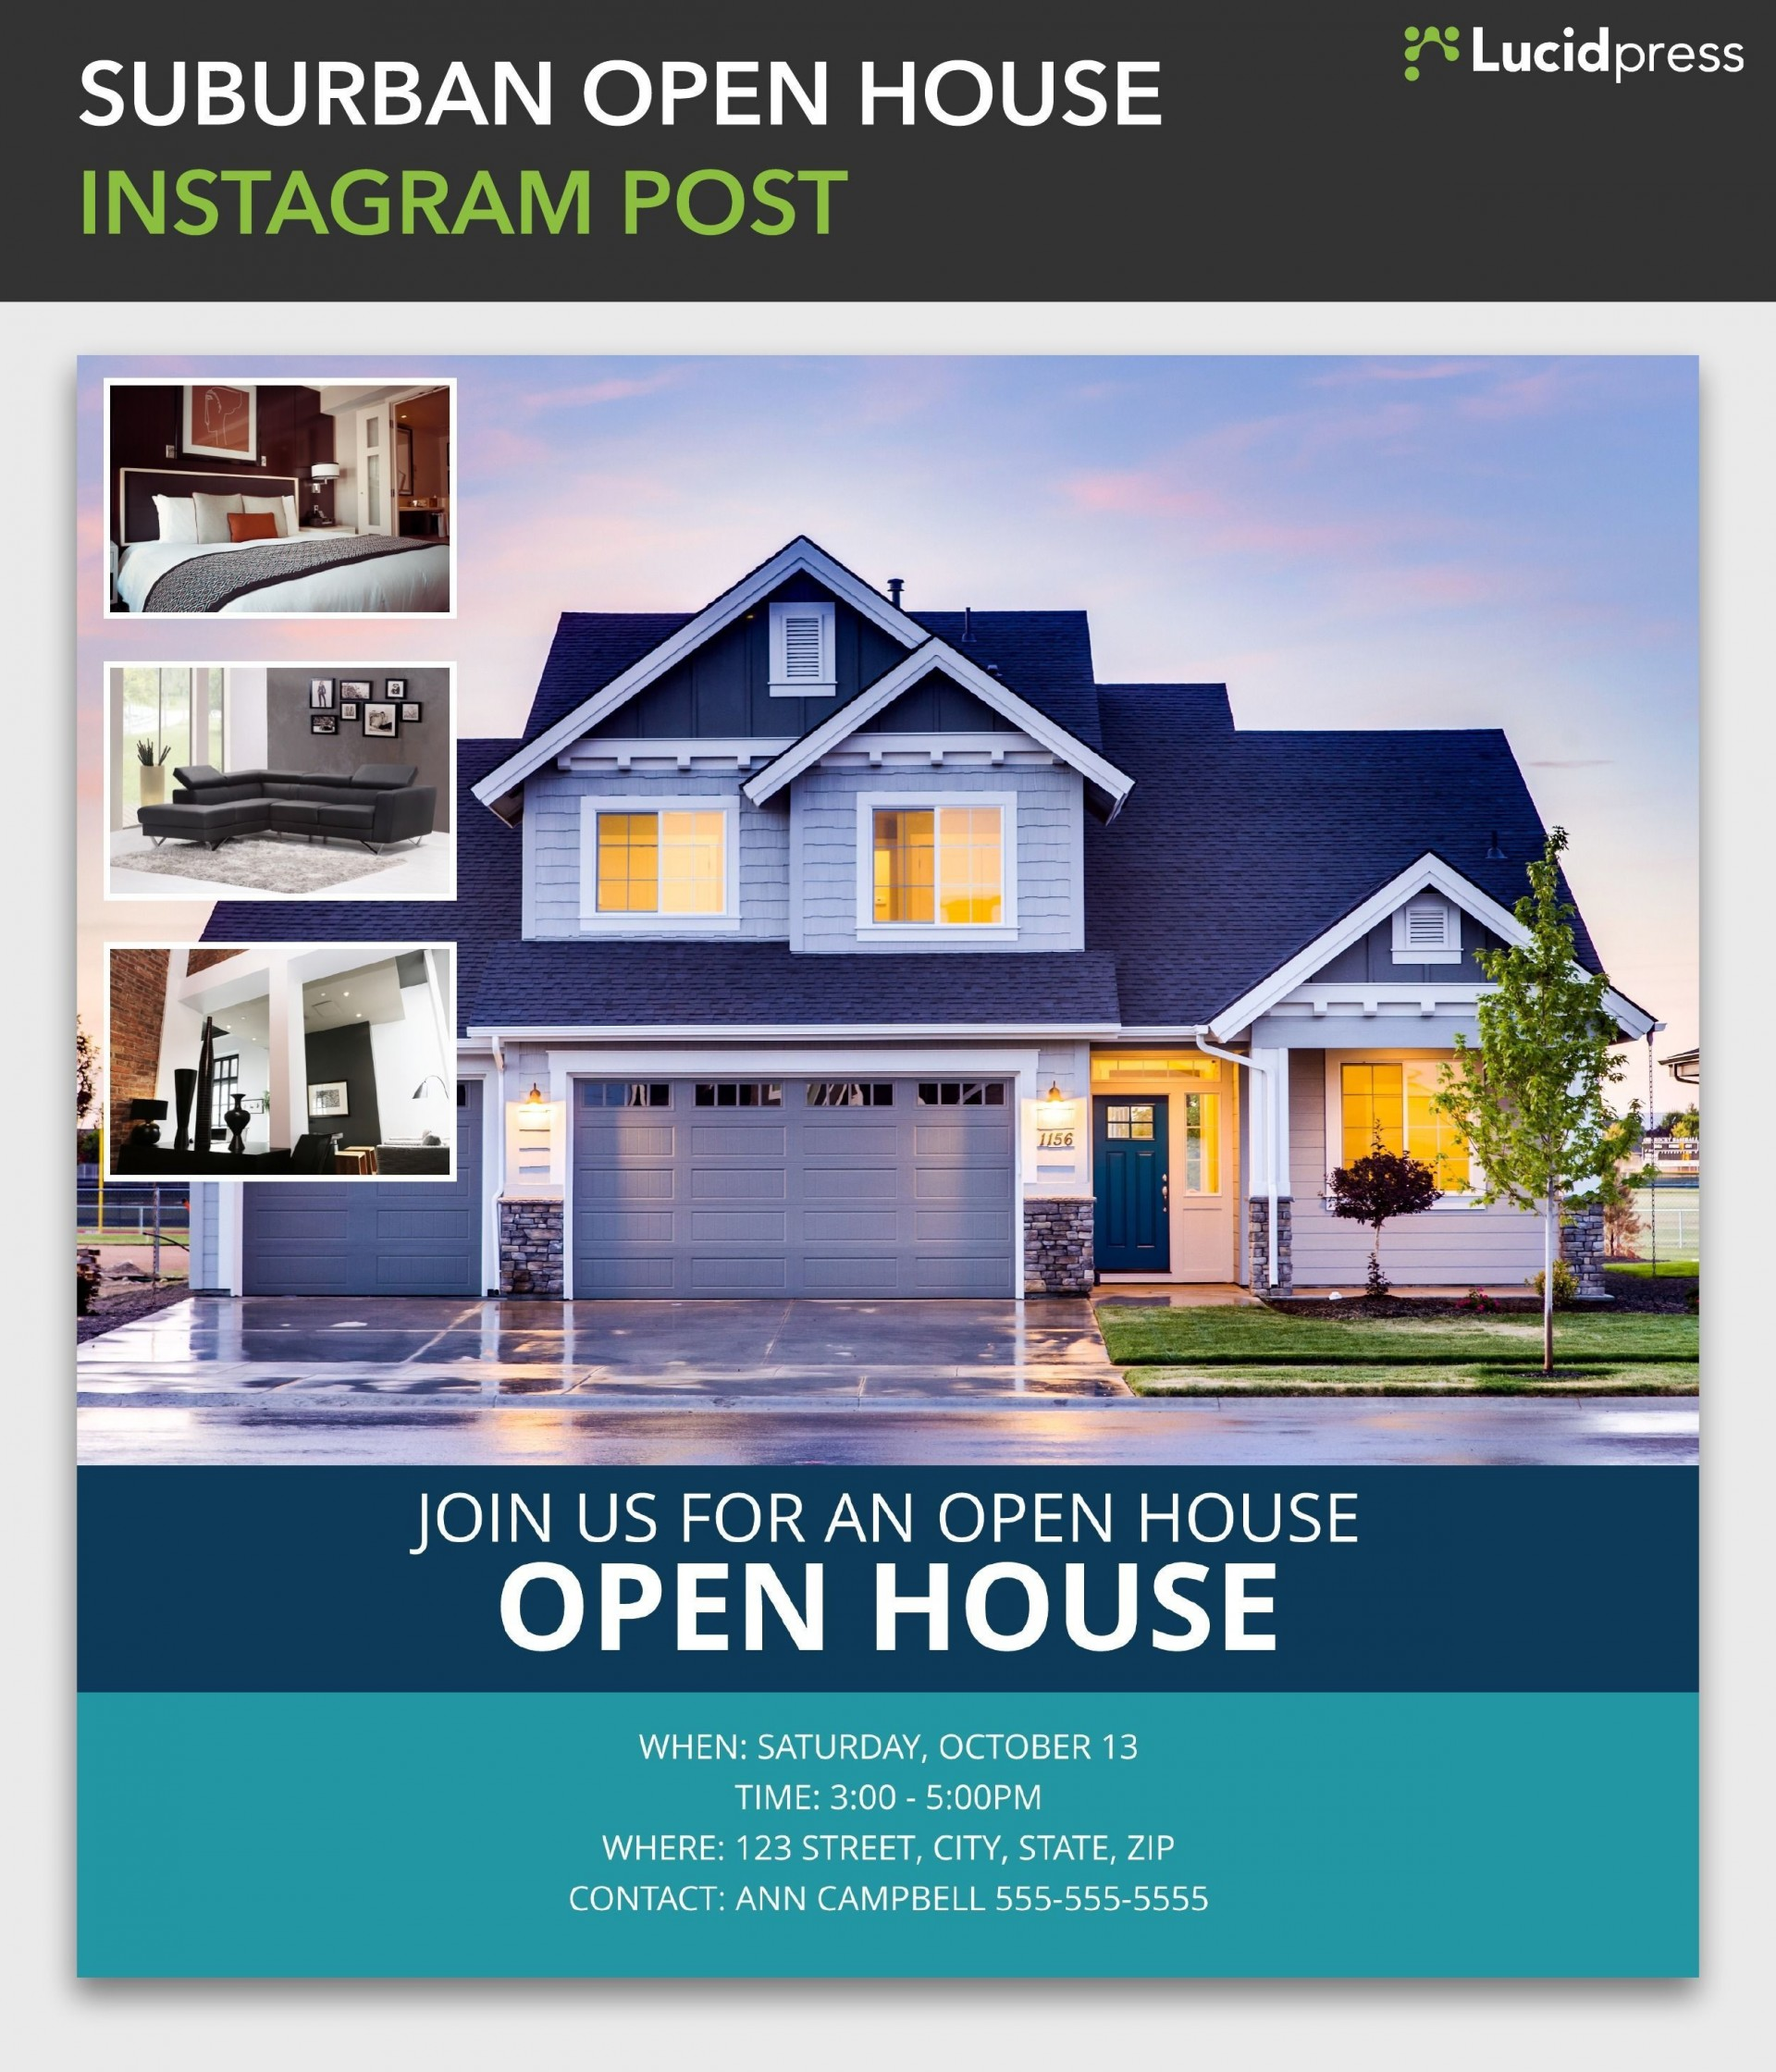 000 Dreaded Open House Flyer Template Word High Resolution  Free Microsoft School1920